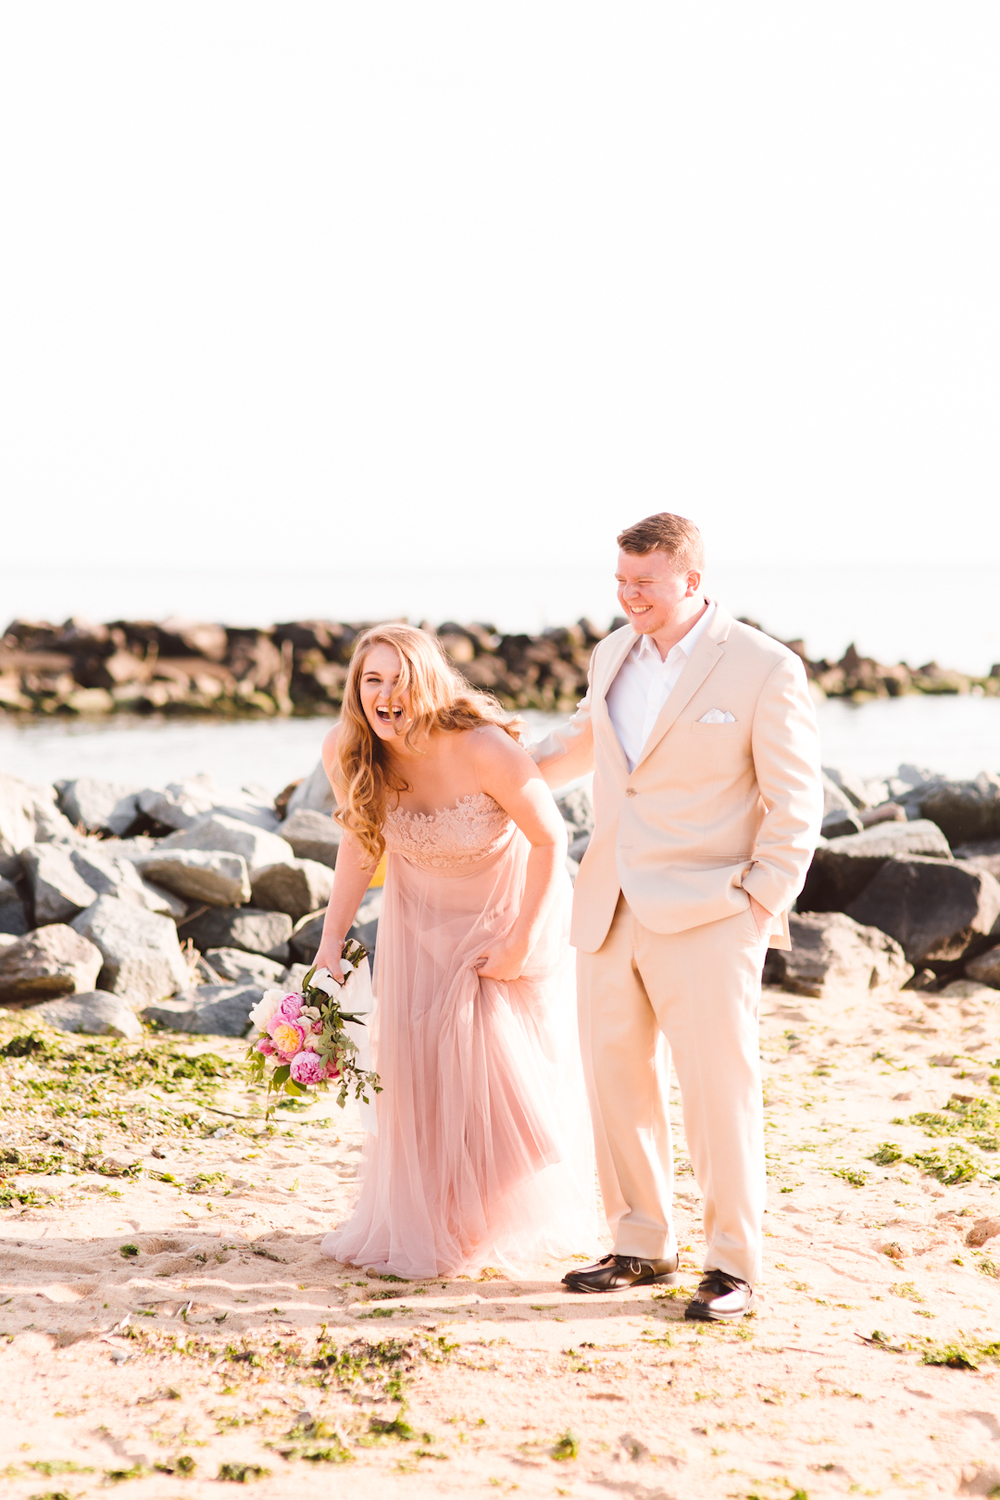 Romantic Styled Shoot Turned Proposal - Stevensville, Md - Brooke Michelle Photography